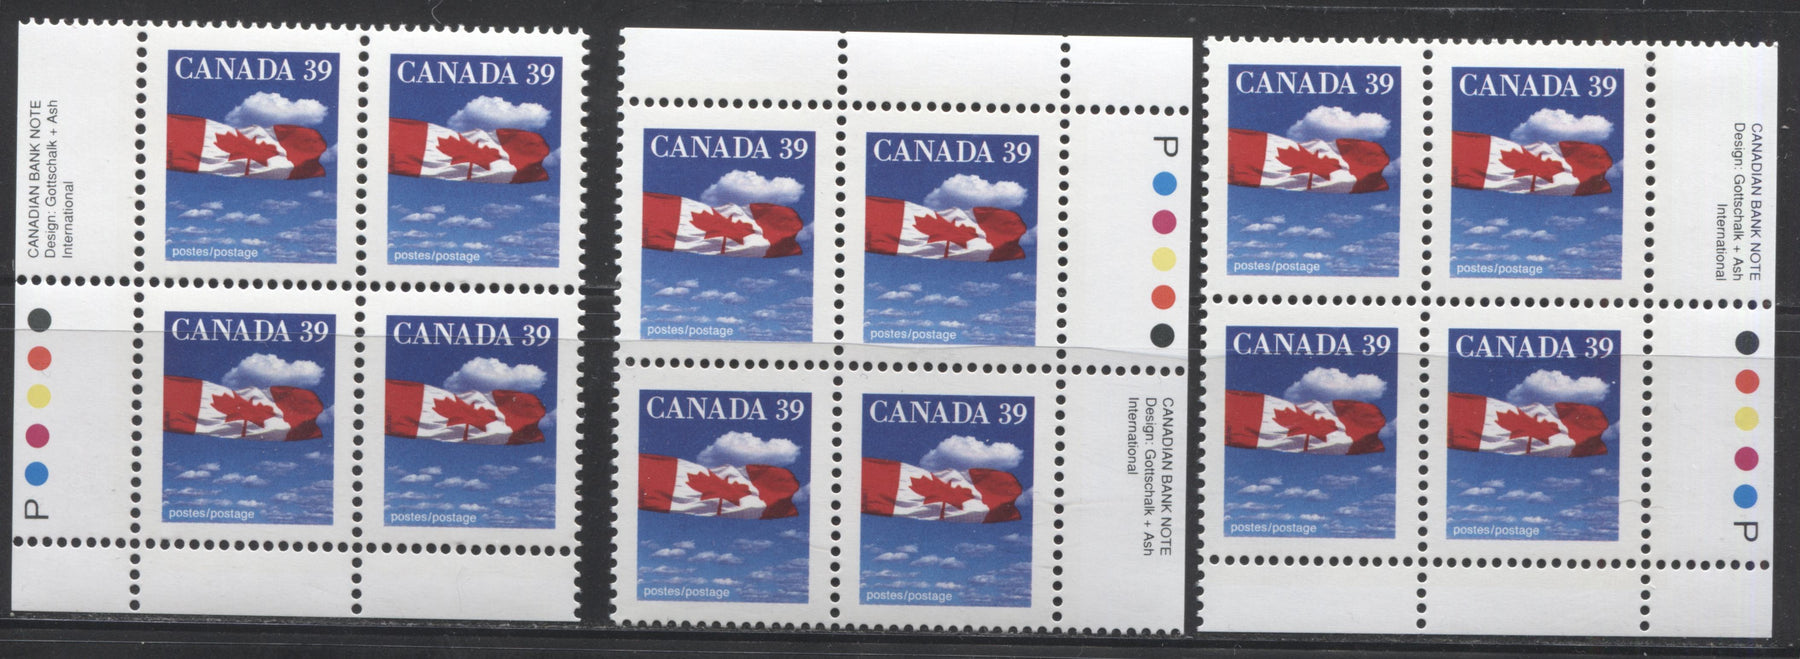 Canada #1166 39c Canadian Flag 1988-1991 Wildlife and Architecture Issue, VFNH UR, LL and LR Inscription Blocks on DF/LF Peterborough Paper, Perf. 13.6 x 13.1